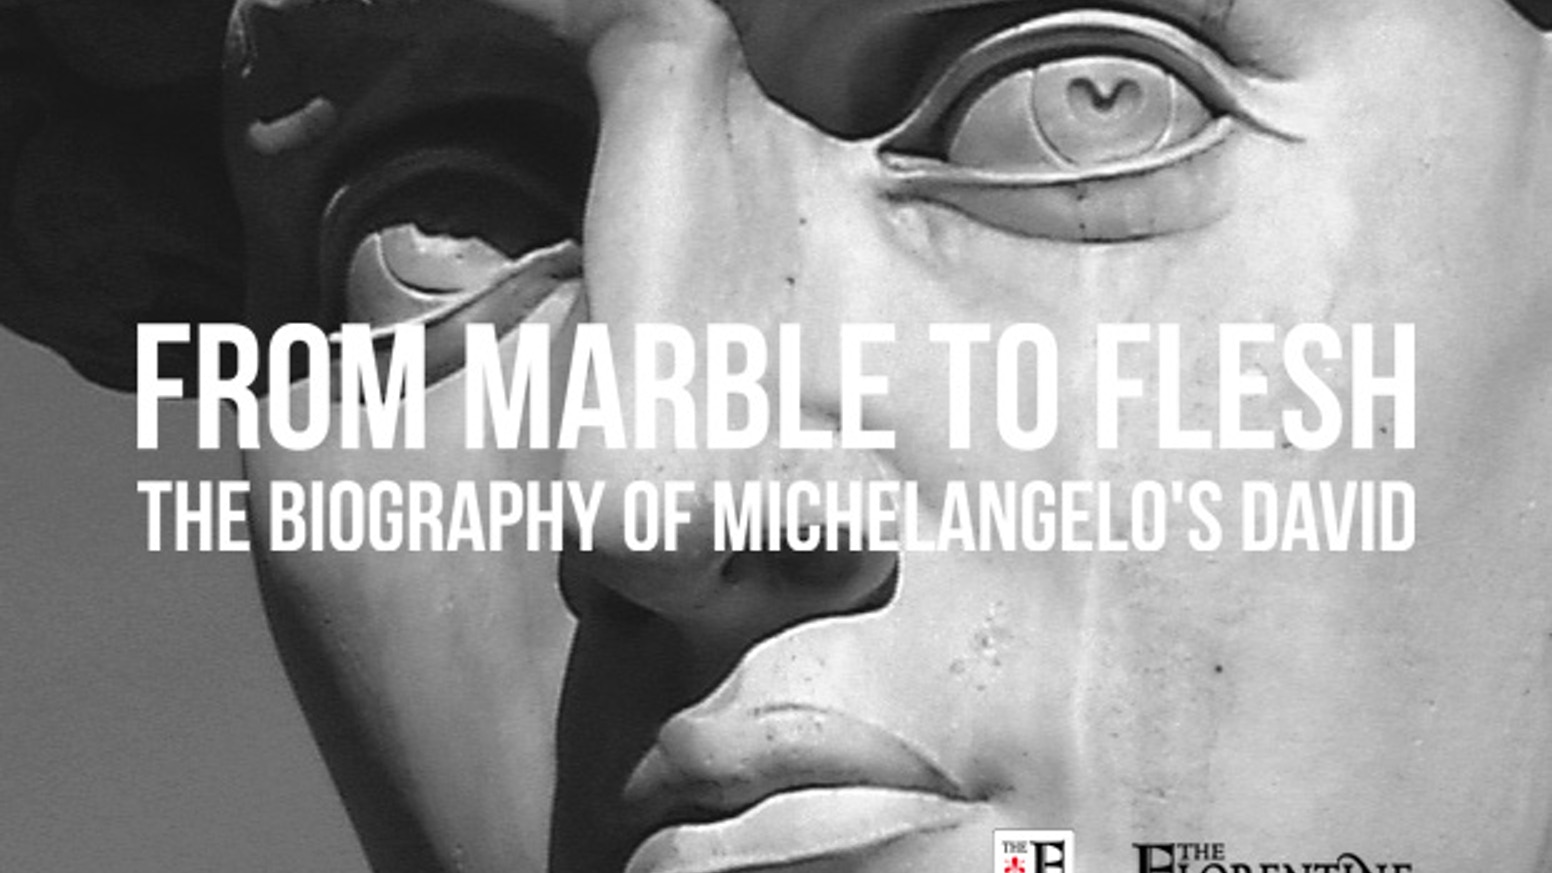 The captivating story of how Michelangelo's David went from a block of marble to a life-like modern icon.